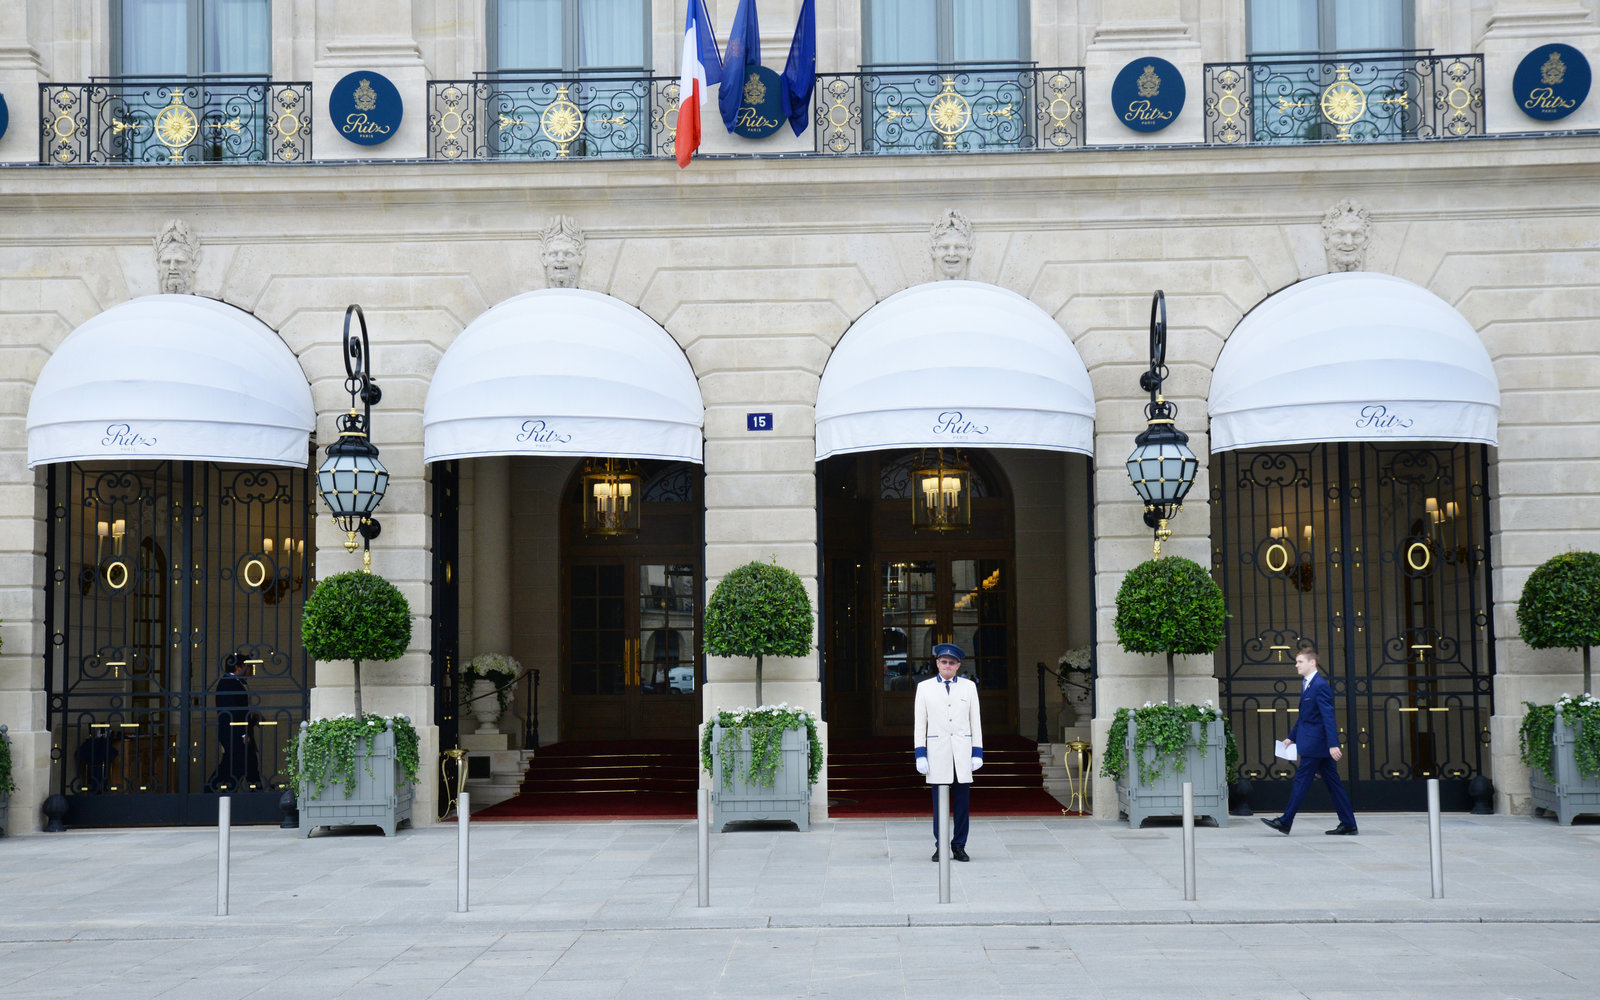 The New Ritz Paris